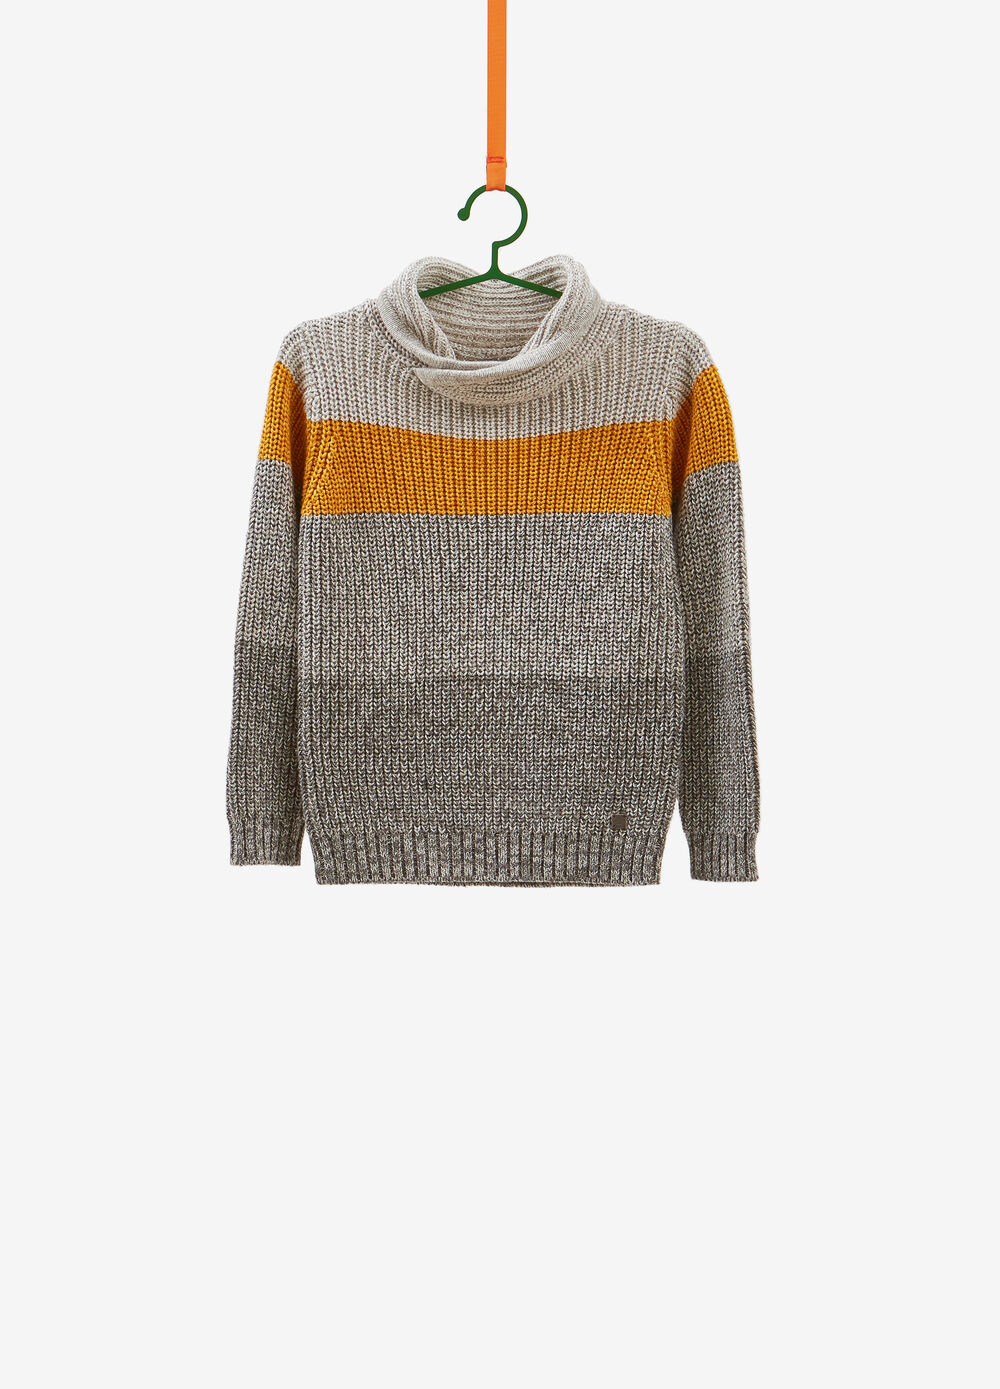 Pullover with striped braided weave